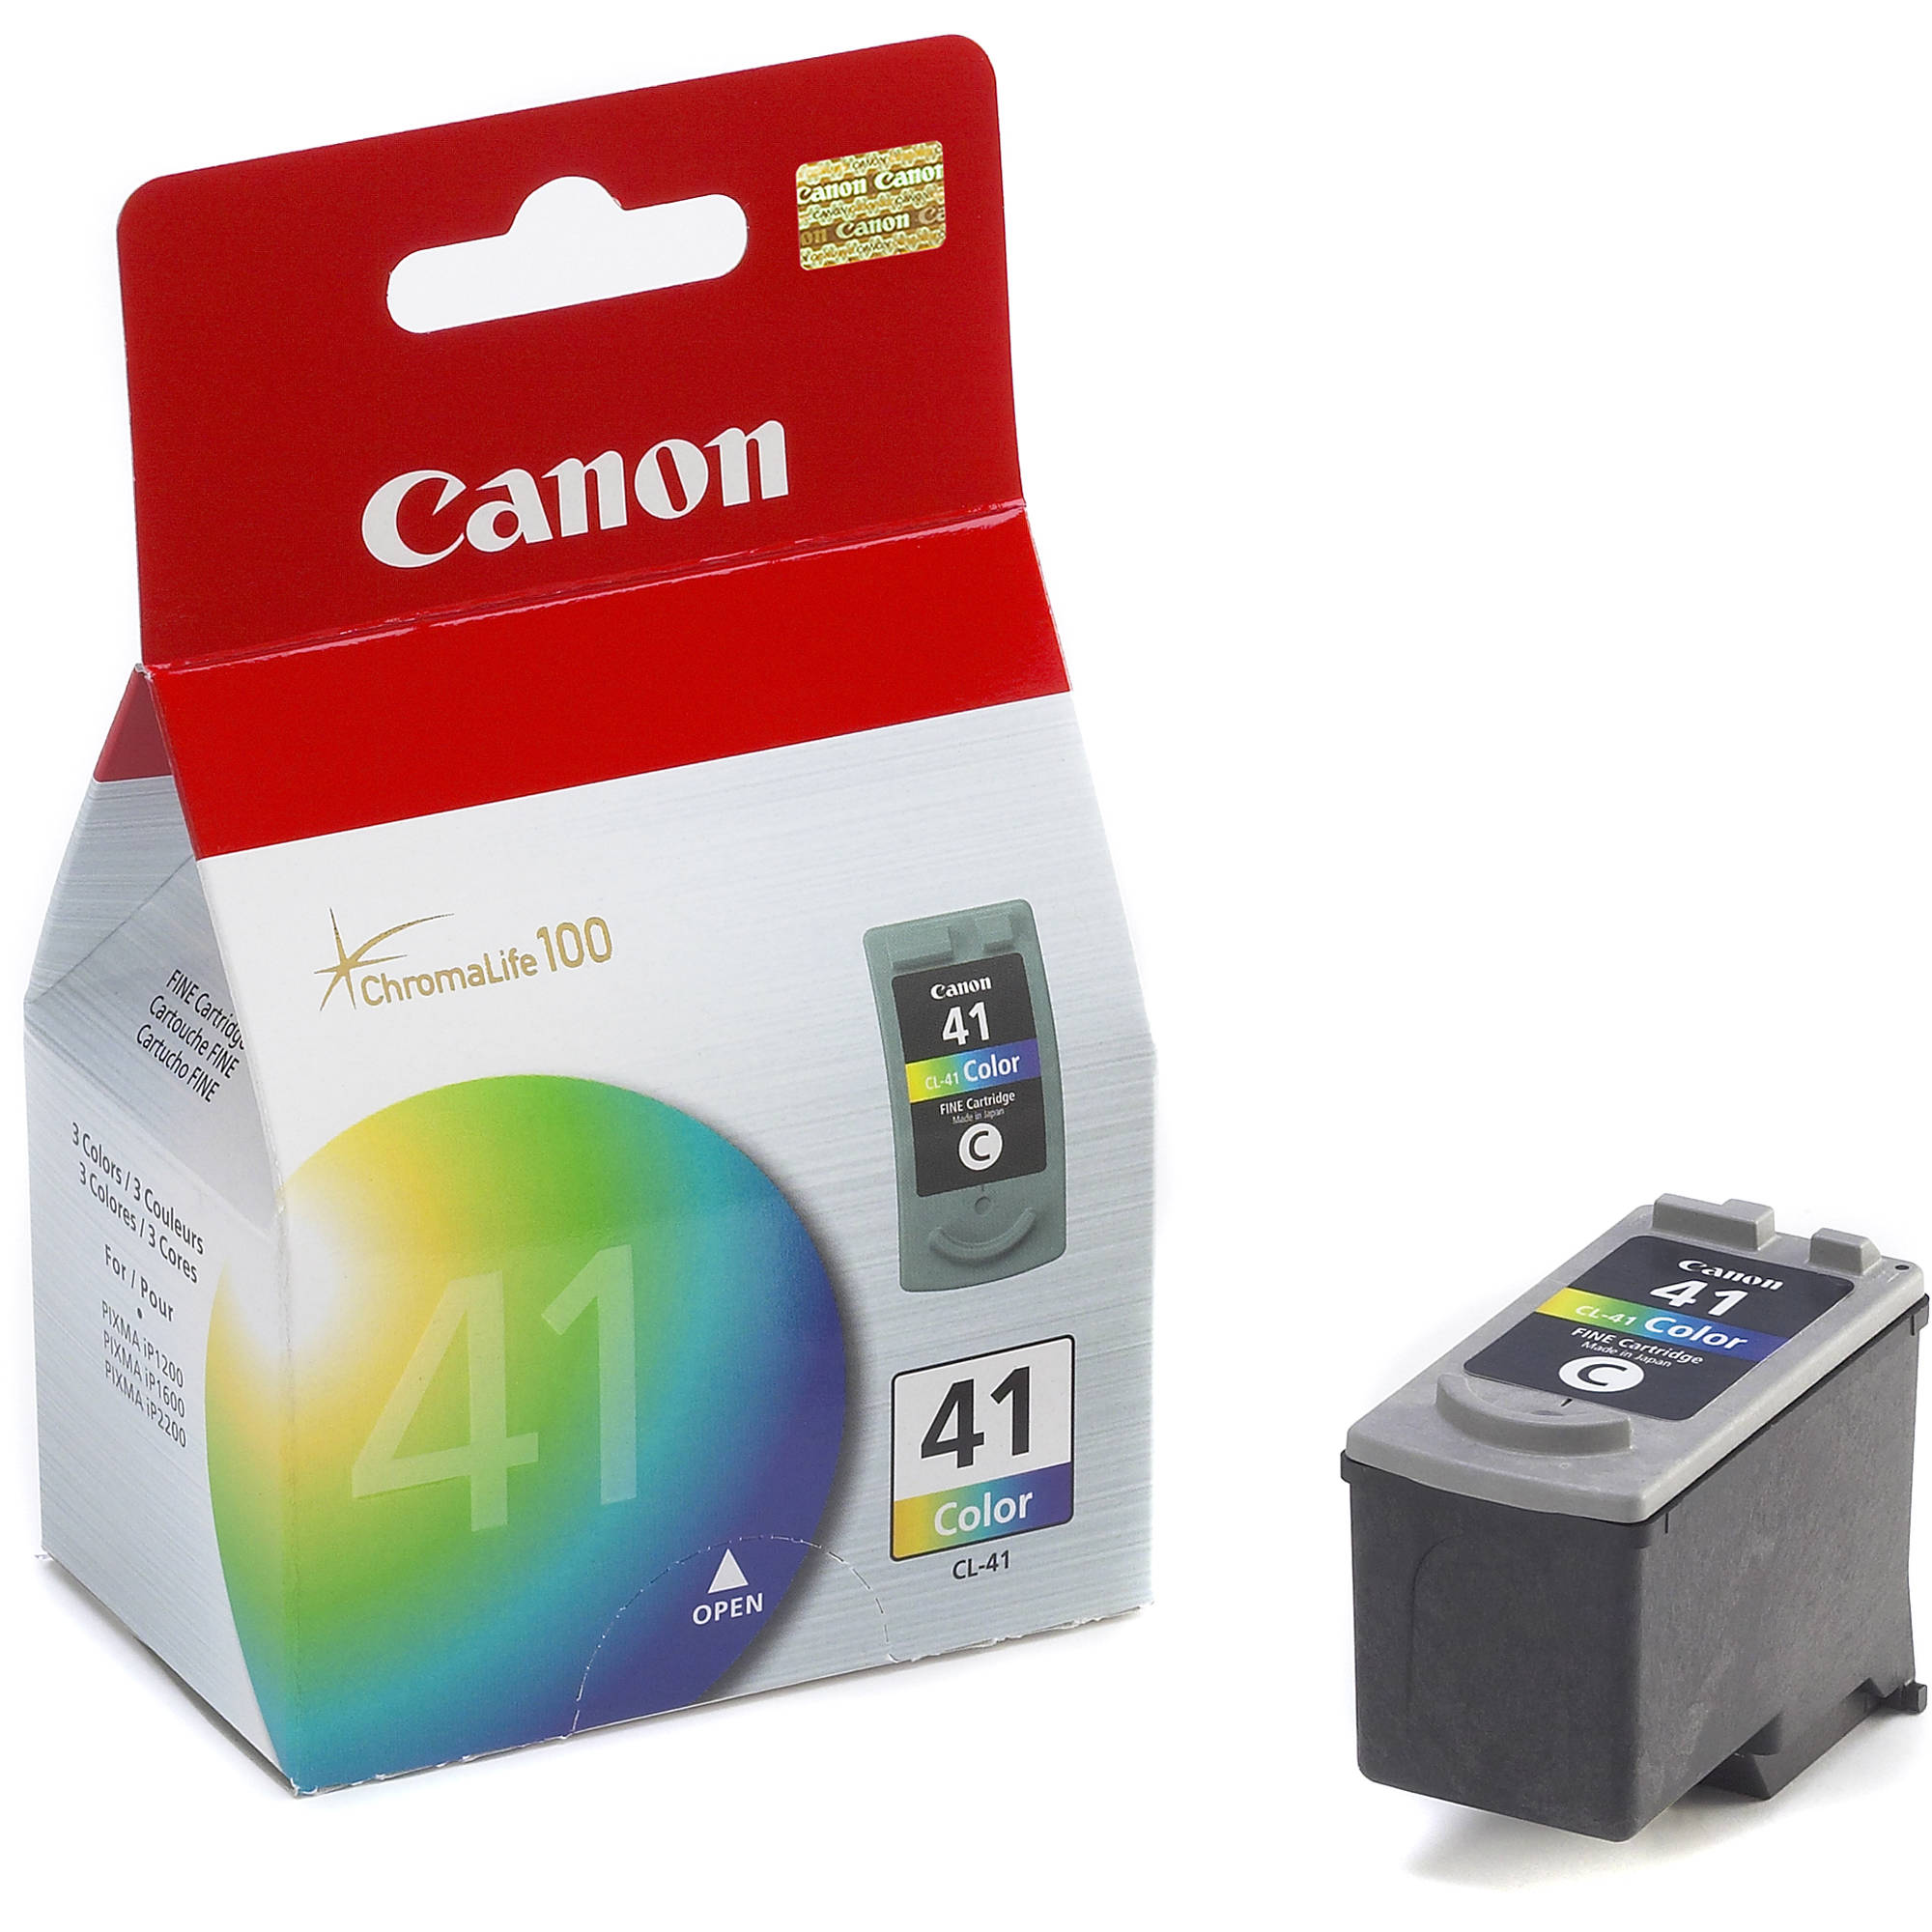 Canon CL-41 Tri-Color Ink Tank 0617B002 B&H Photo Video